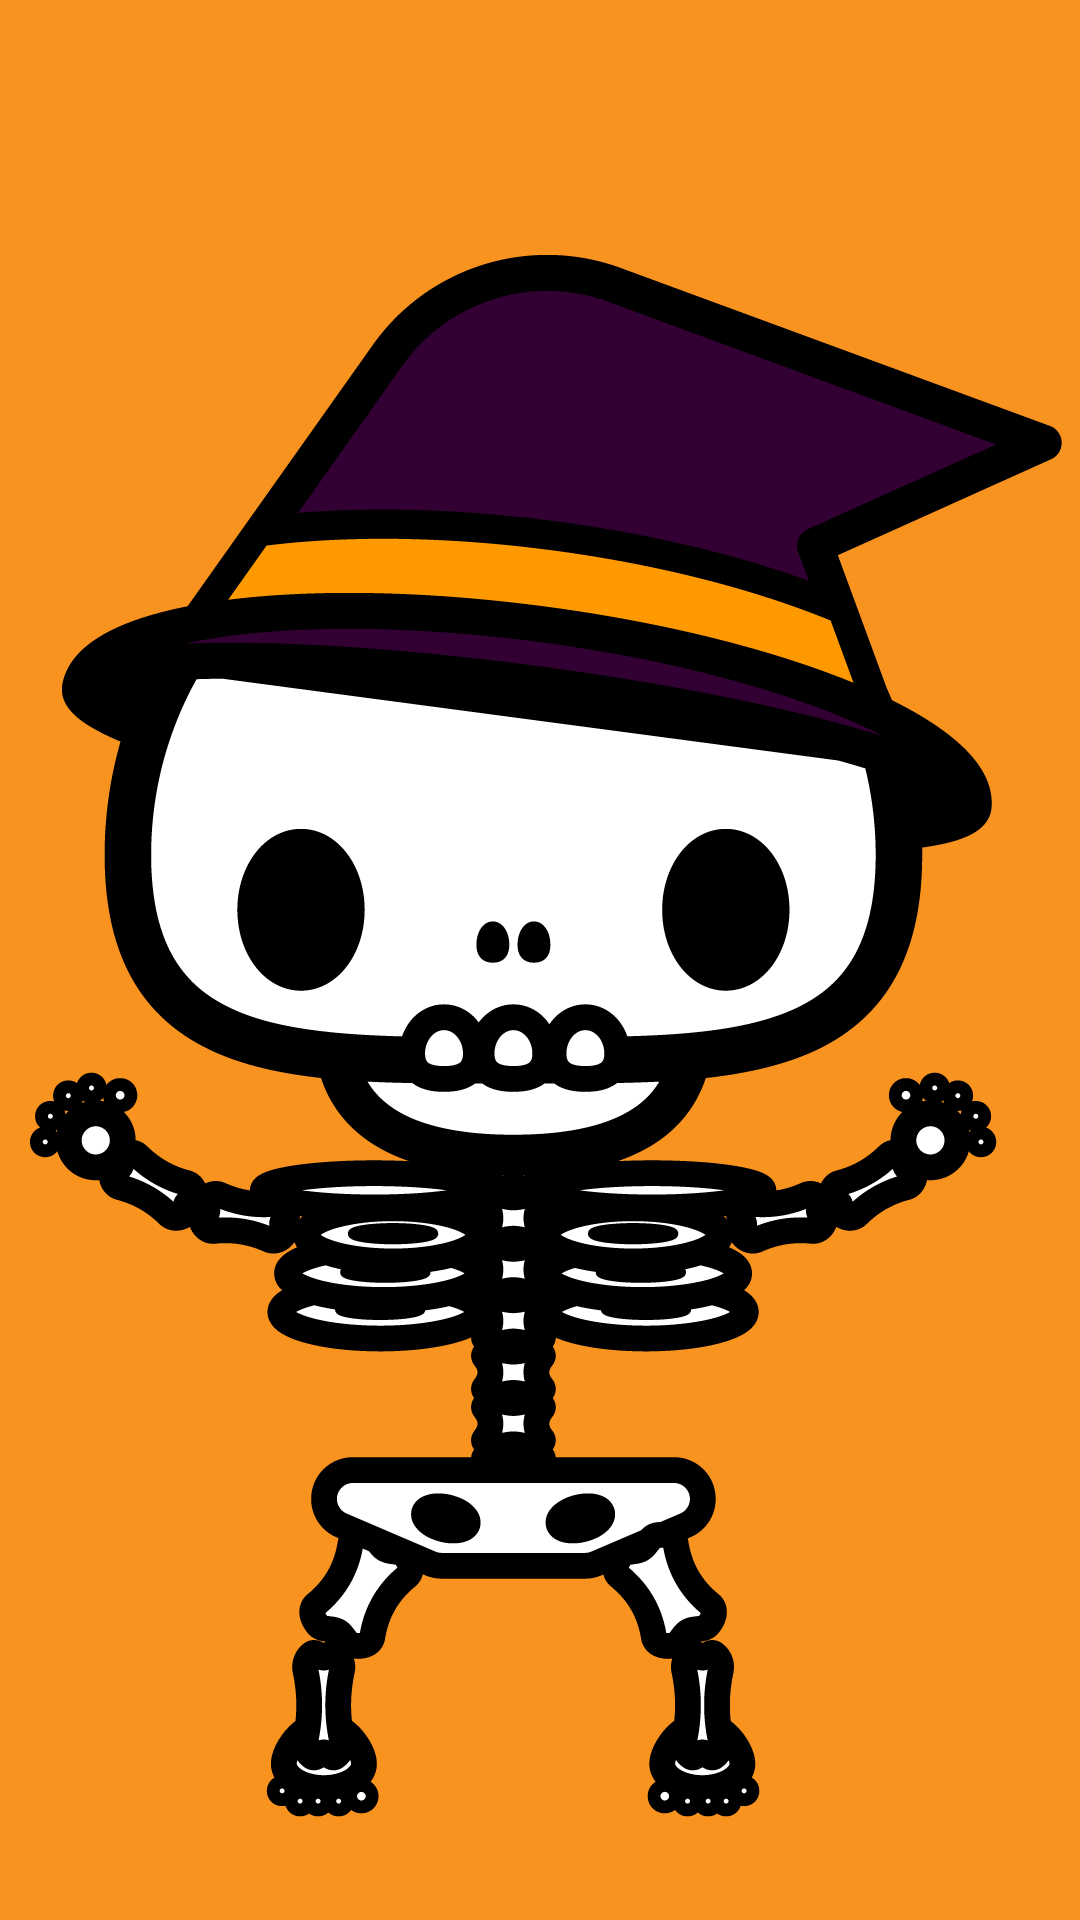 wallpaper2_halloween-skeleton01-orange-iphone